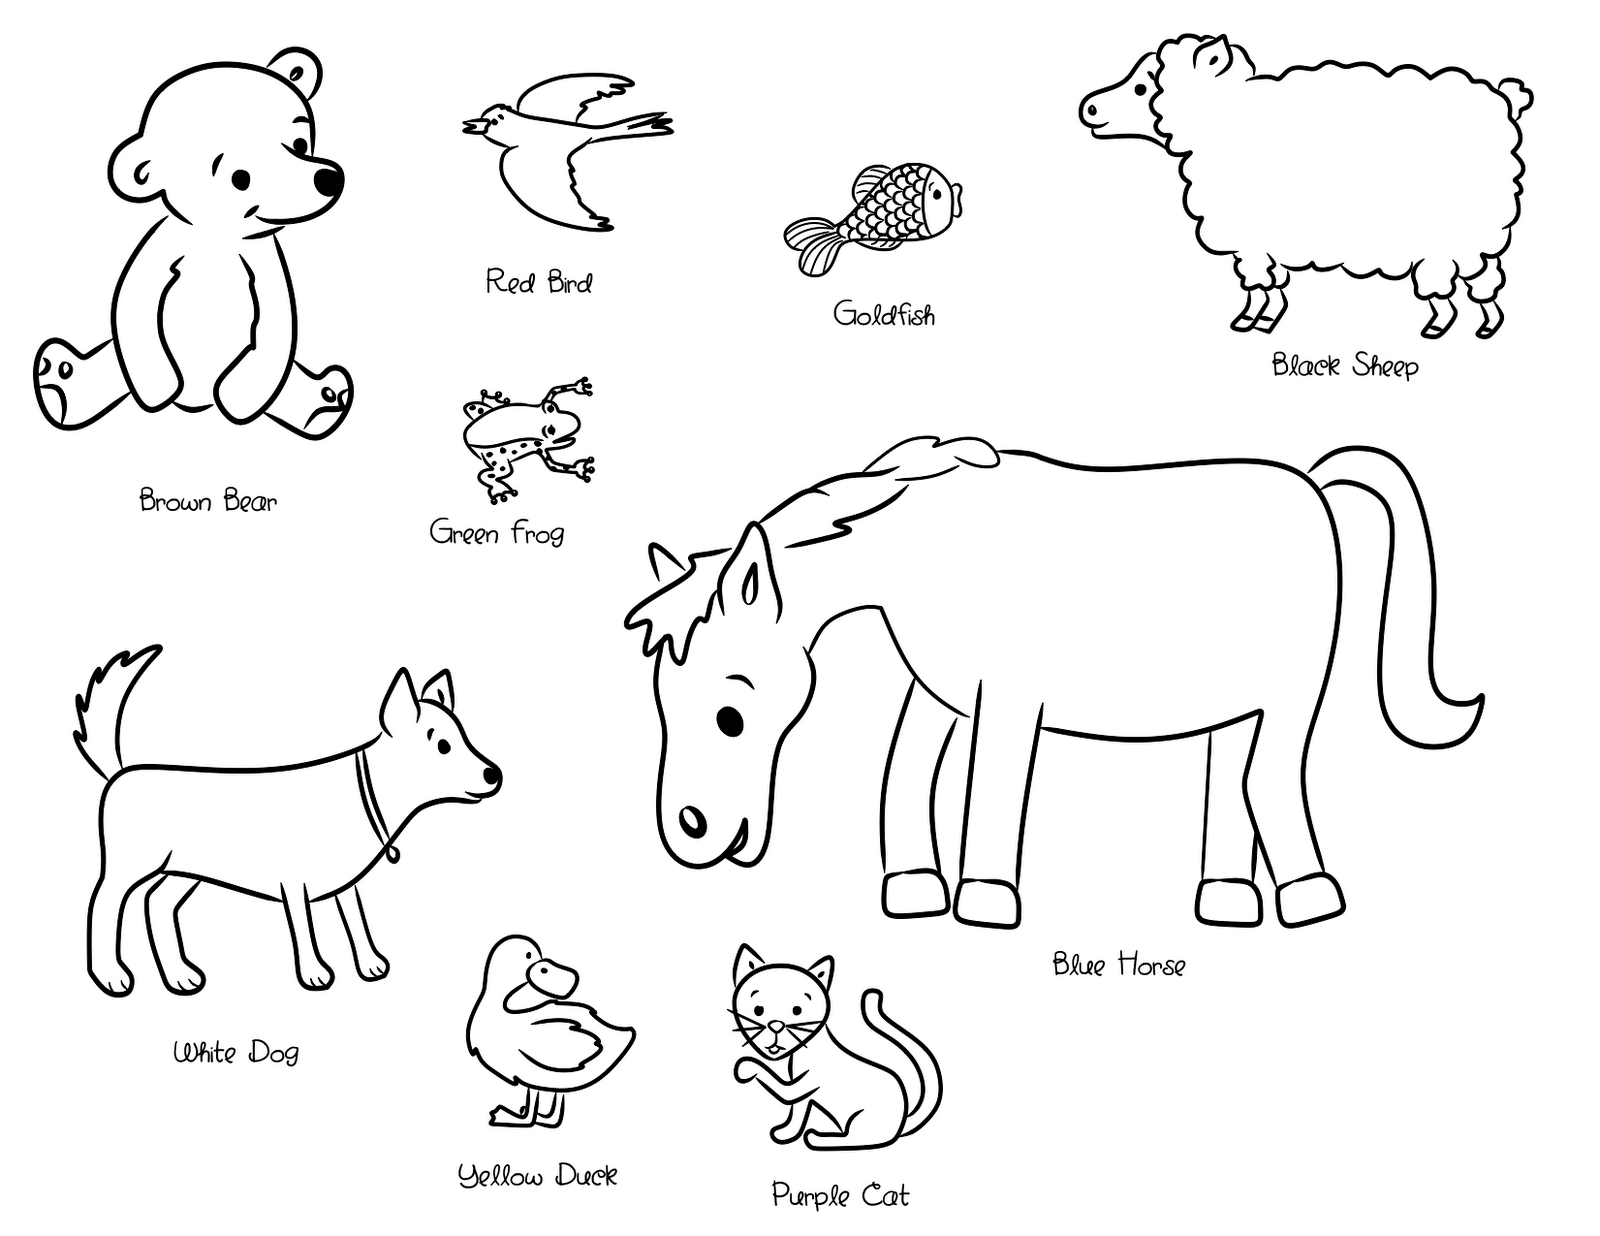 1600x1236 Coloring Pages New Eric Carle Blue Horse Printable